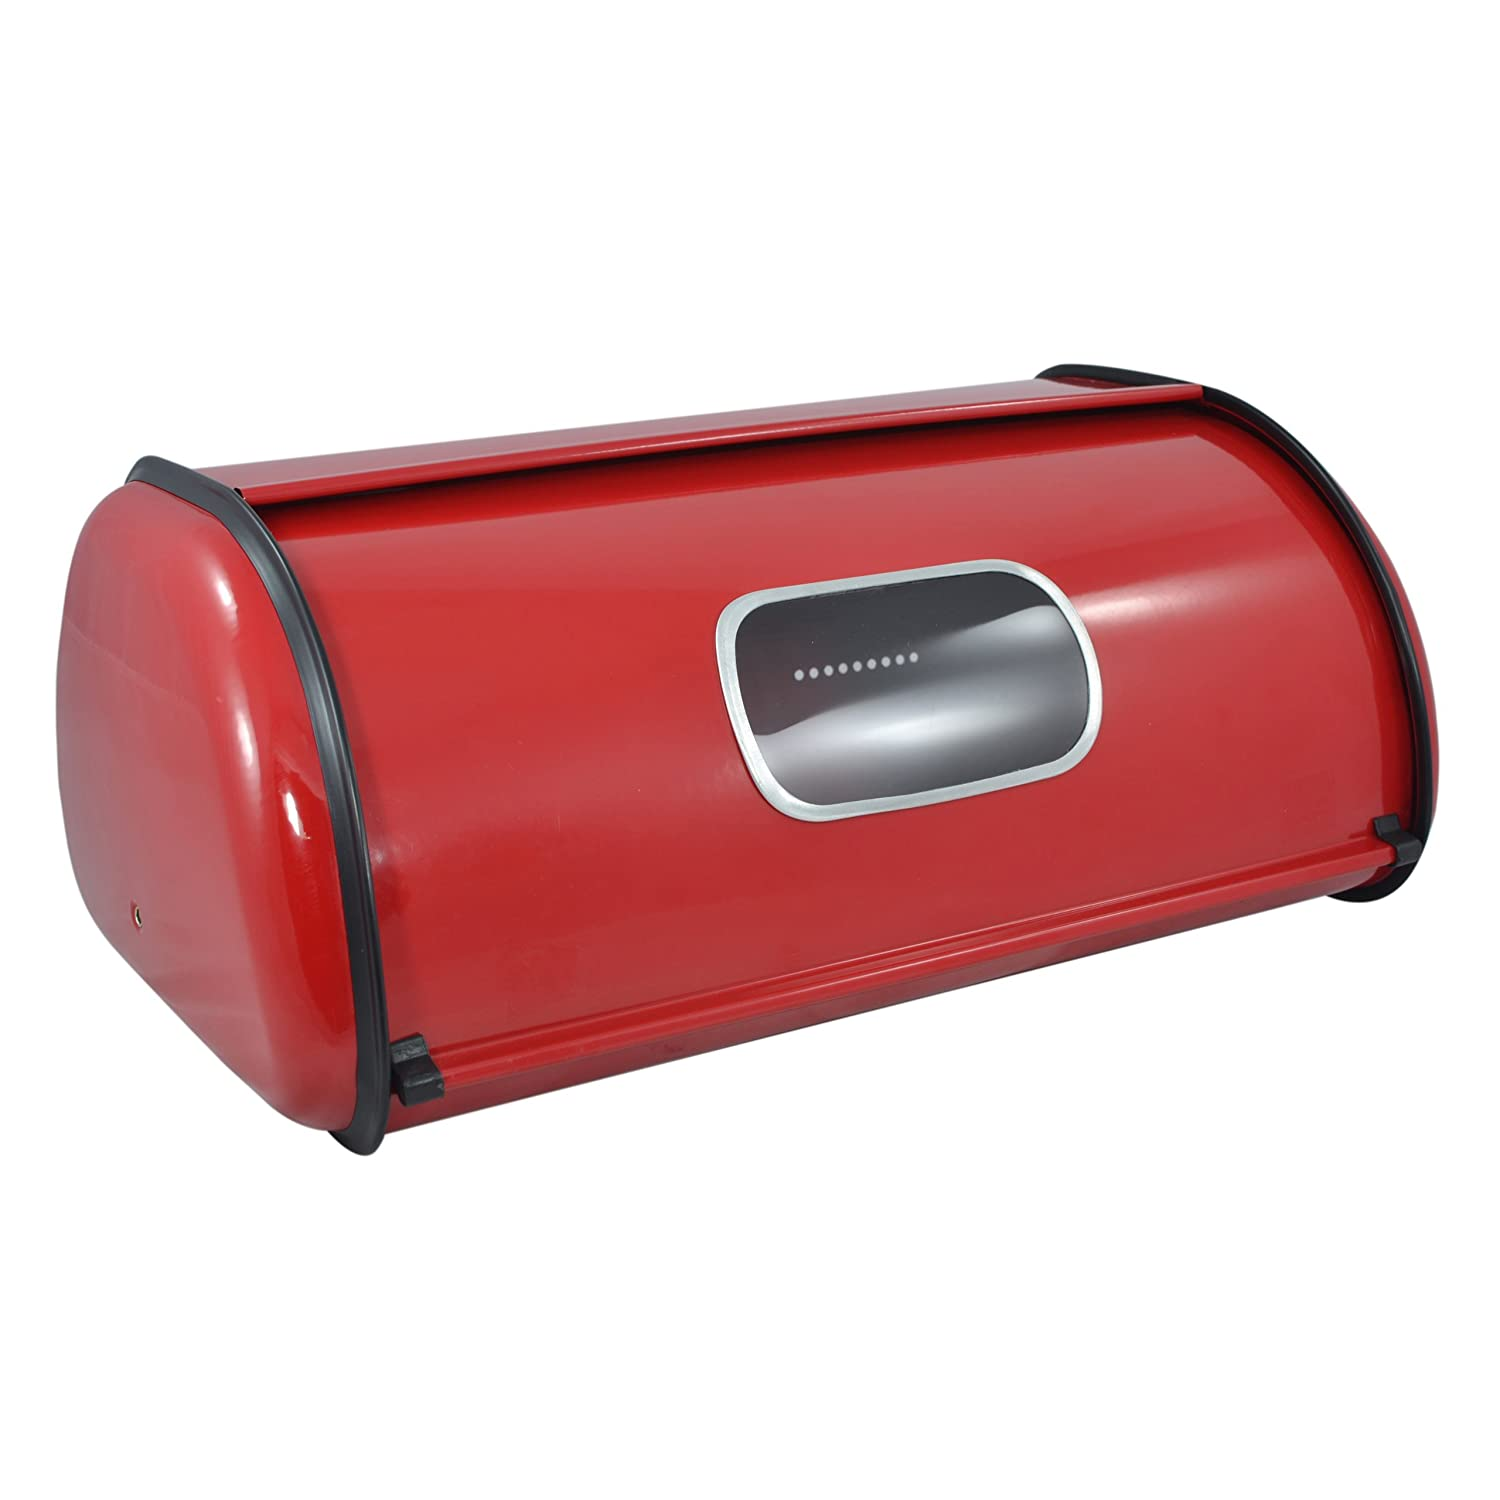 Modern Red Metal Clear Front Window Rolltop 2 Loaf Bread Box/Storage Bin - MyGift TB-KIT0008RED